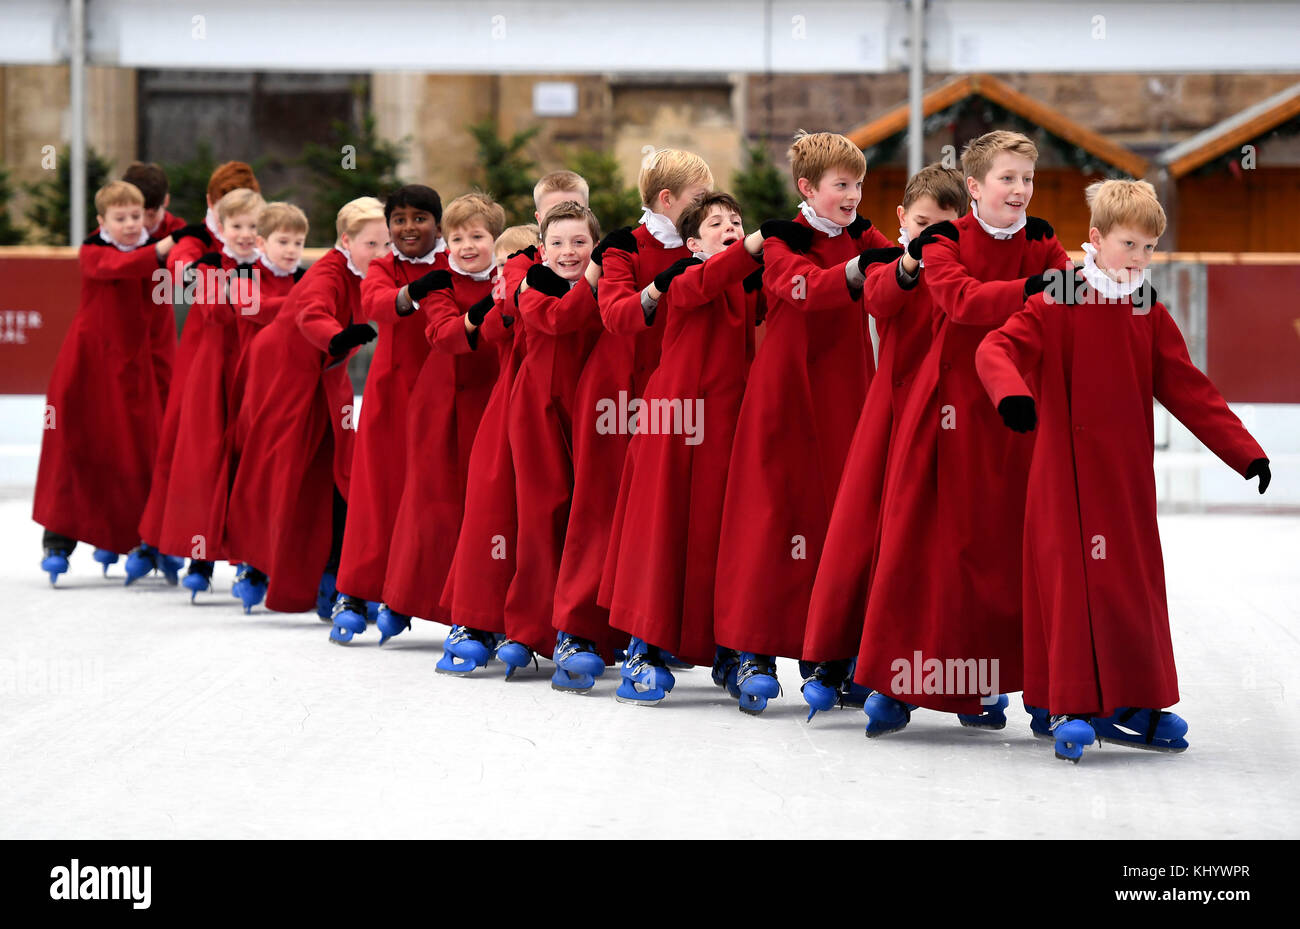 Choristers skating on the ice rink at Winchester Cathedral, Hampshire, UK Credit: Finnbarr Webster/Alamy Live News - Stock Image